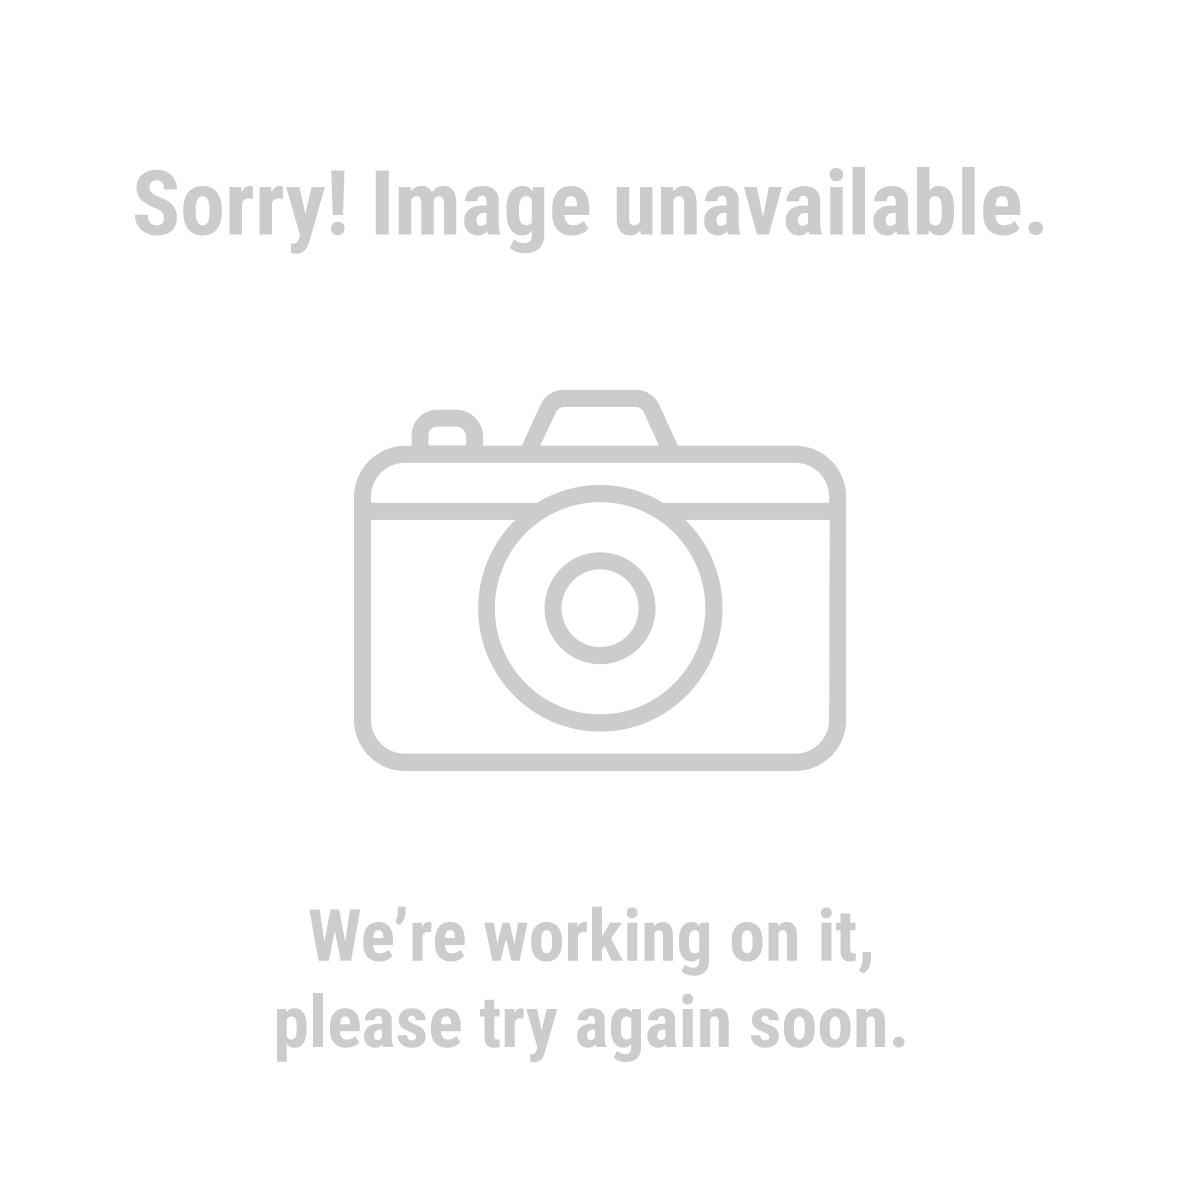 "Warrior 90338 9"" Grinding Wheels for Metal - Pack of 5"